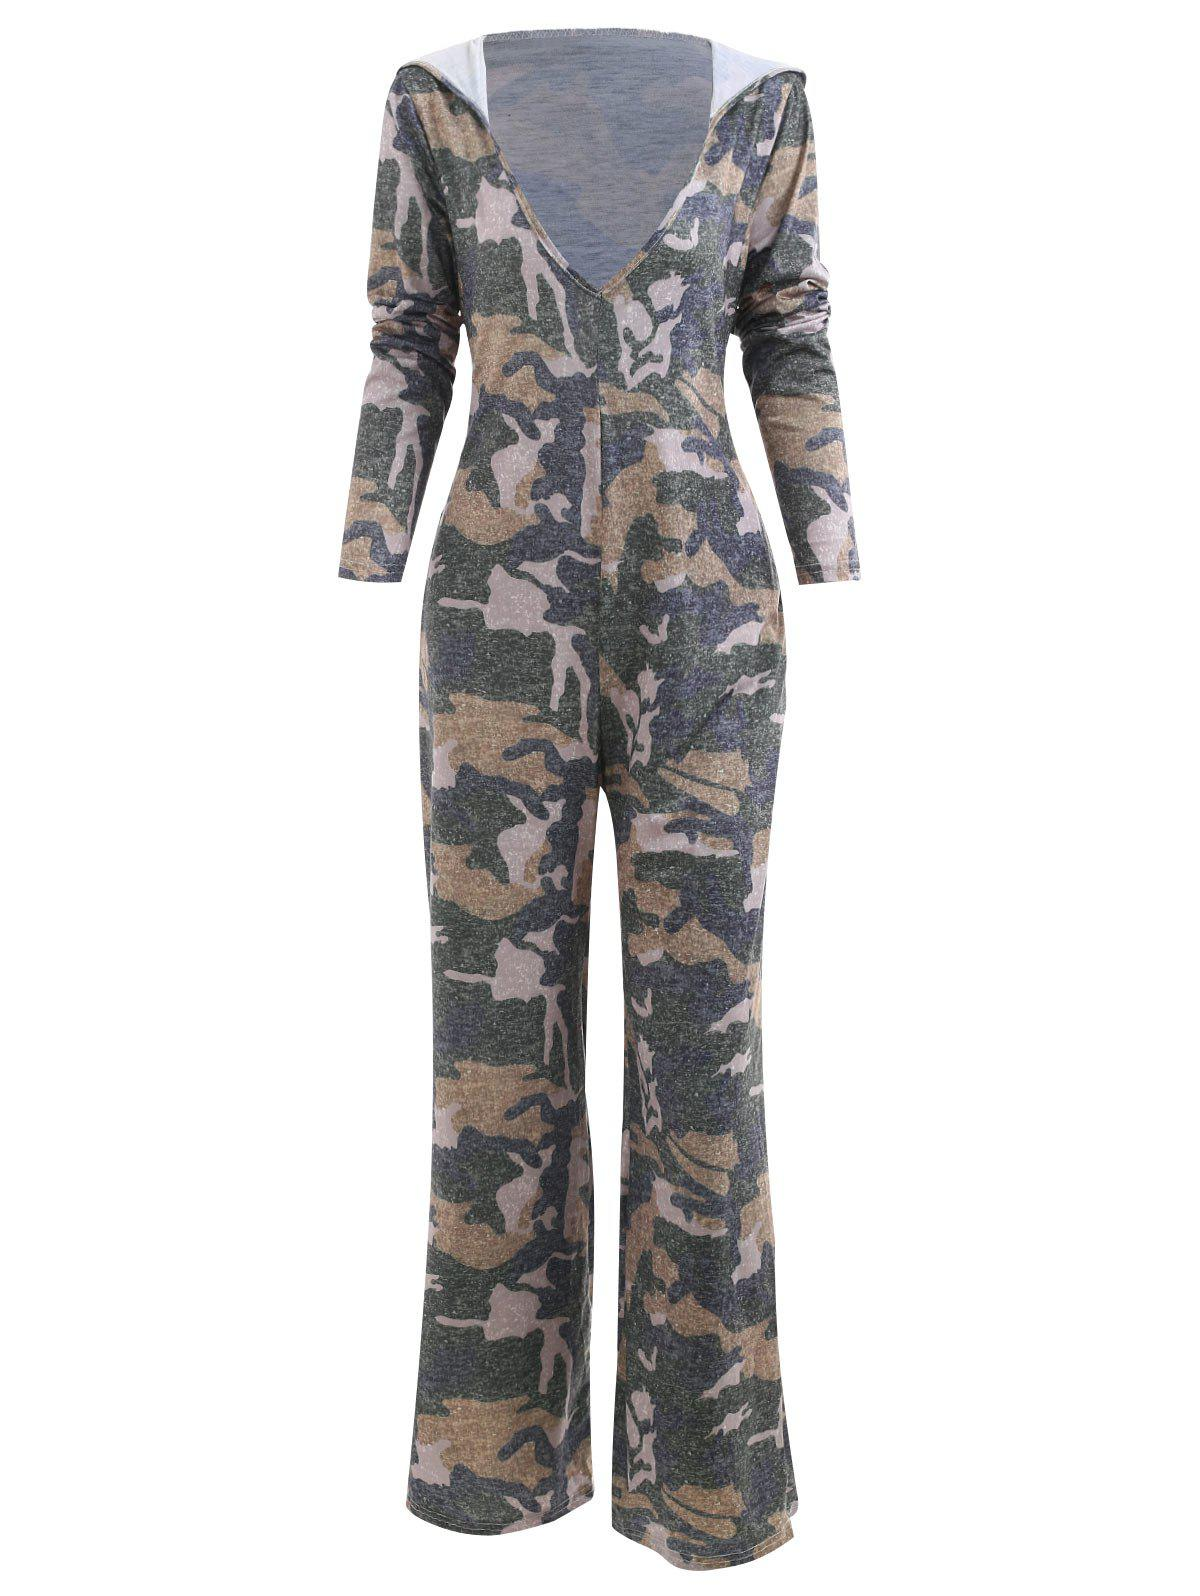 42ad5ed73a 69% OFF] Hooded Low Cut Camouflage Print Jumpsuit | Rosegal